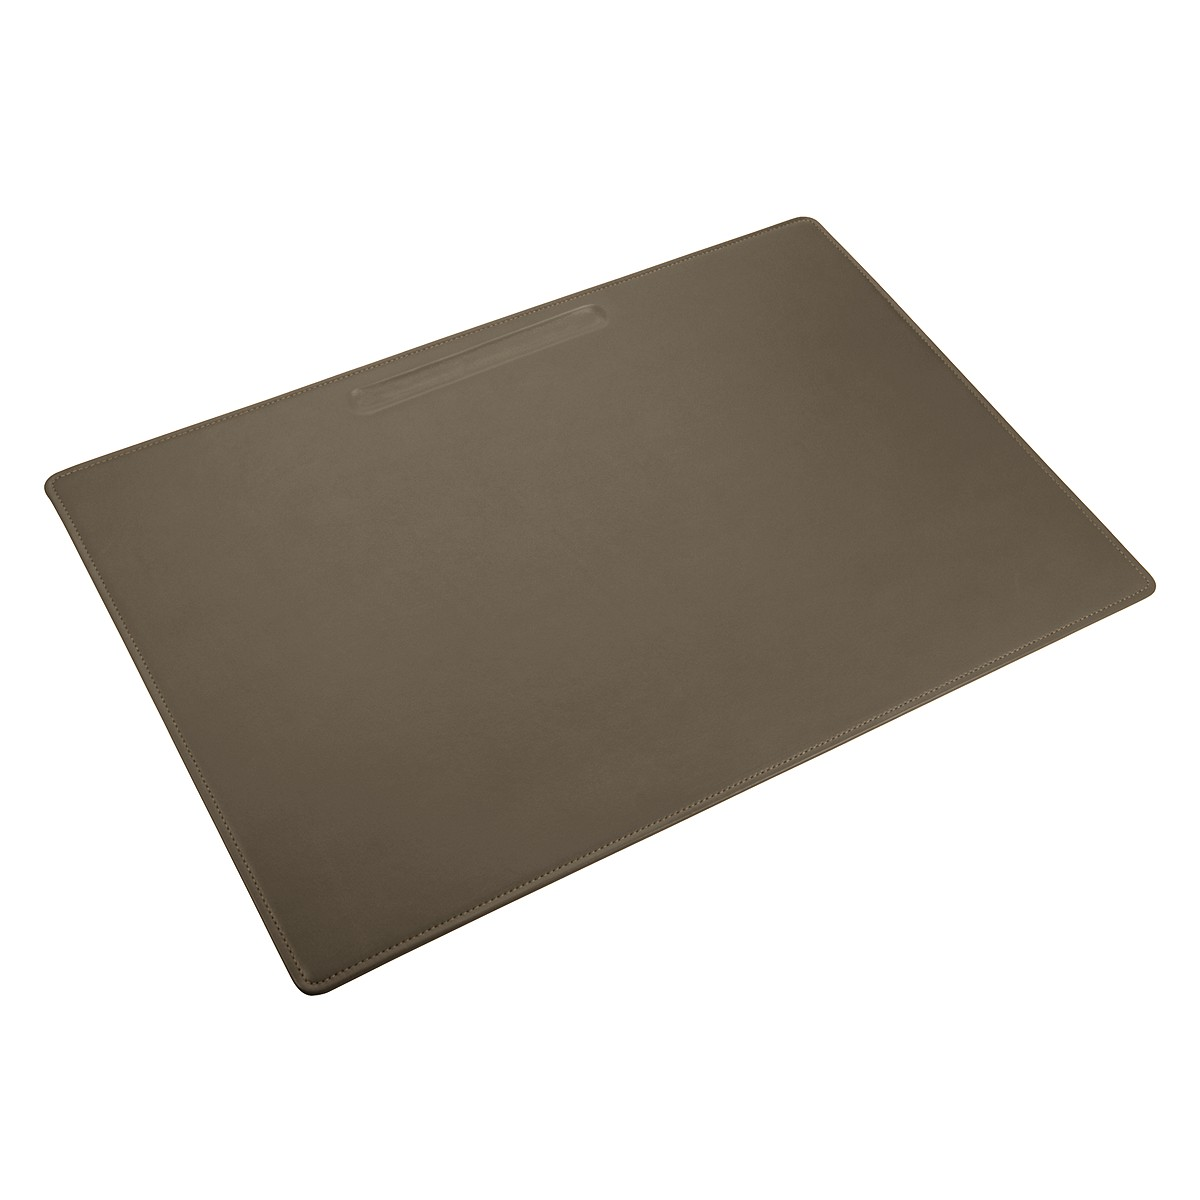 Desk blotter with rounded corners 19.7 x 13.4 inches